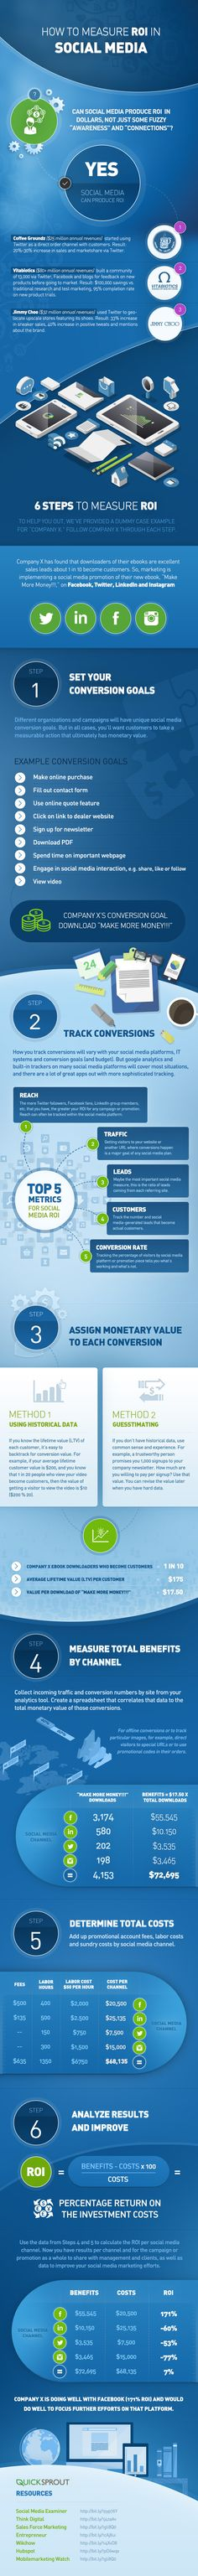 6 Steps to Measure the Return-on-investment of Your #SocialMedia #Marketing Campaigns - #infographic #SMM